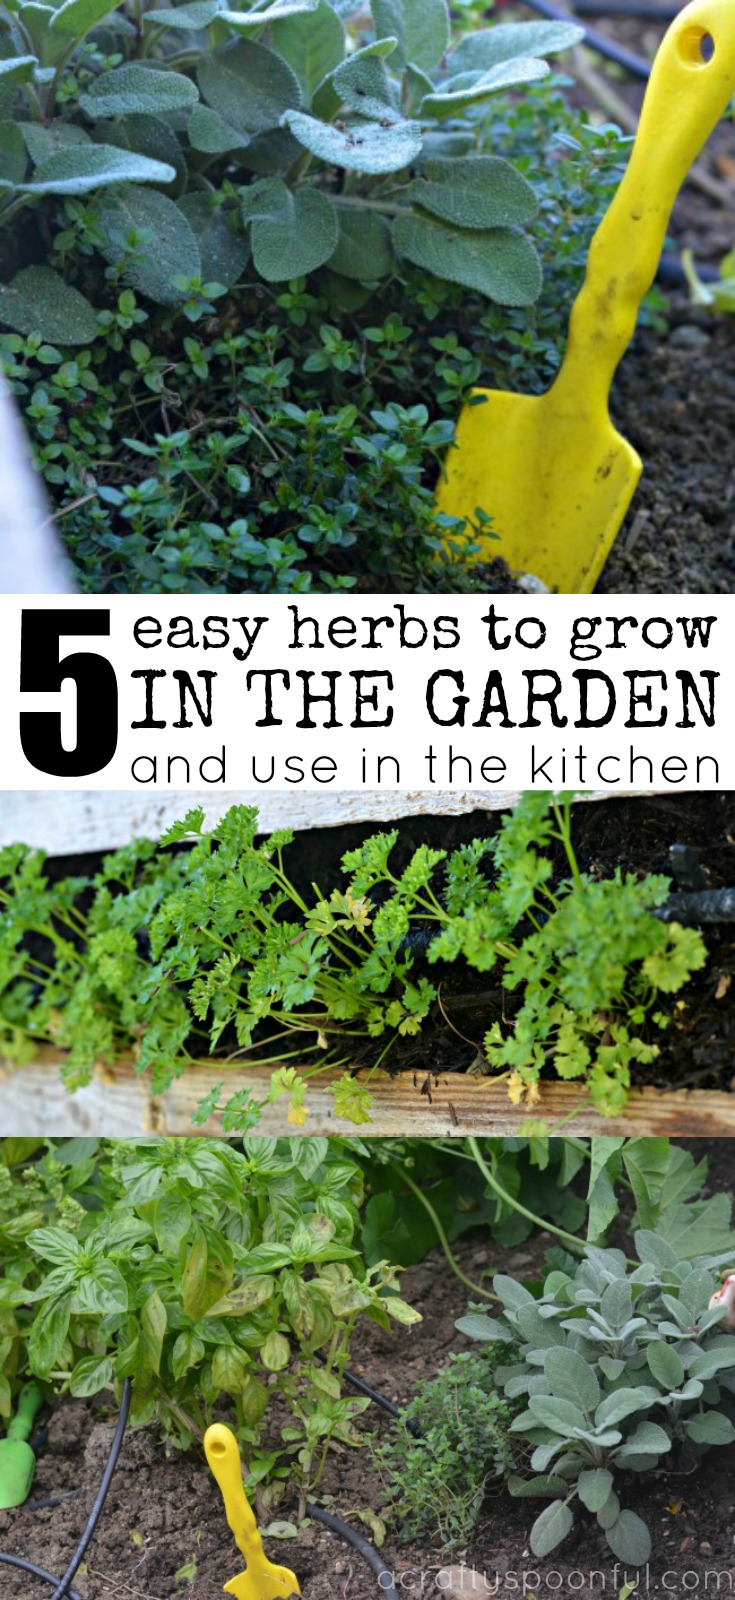 5 Easy Herbs To Grow In The Garden And Use In The Kitchen